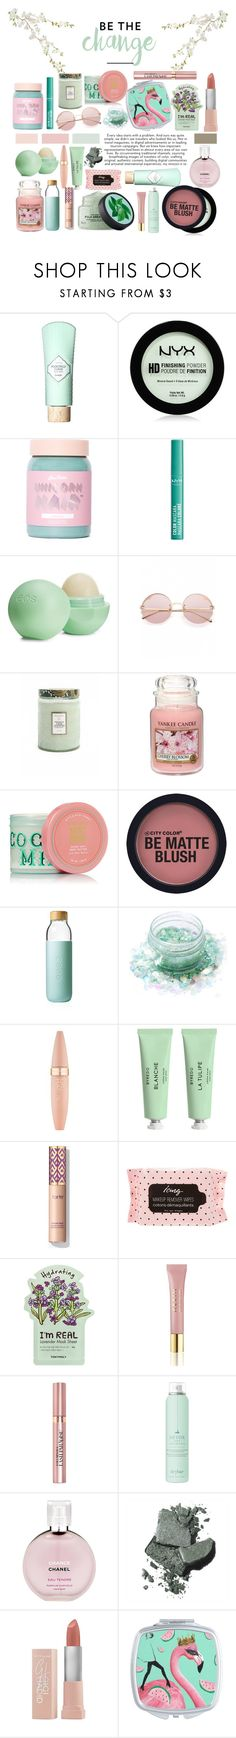 """Mint"" by marilightwood ❤ liked on Polyvore featuring beauty, Benefit, NYX, Lime Crime, Eos, Voluspa, Yankee Candle, Soma, Lunautics and Maybelline"